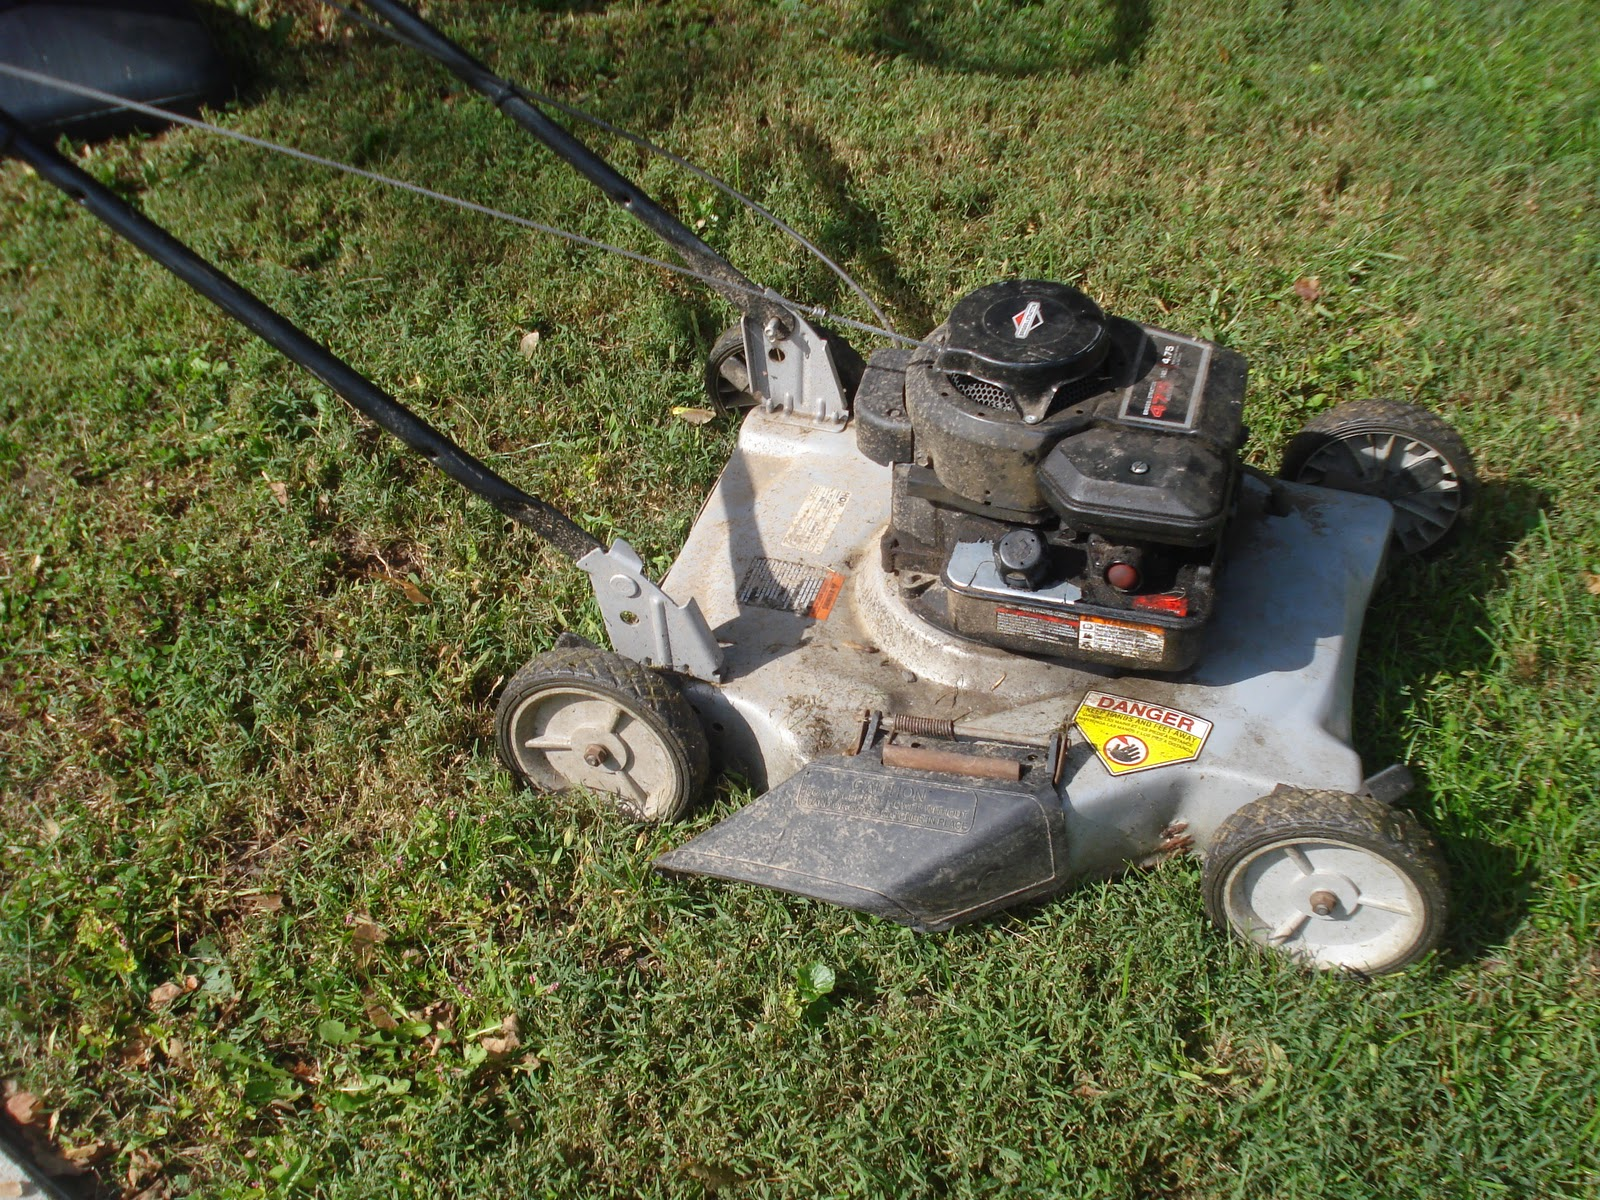 Lawn Mower Maintenance Part 2